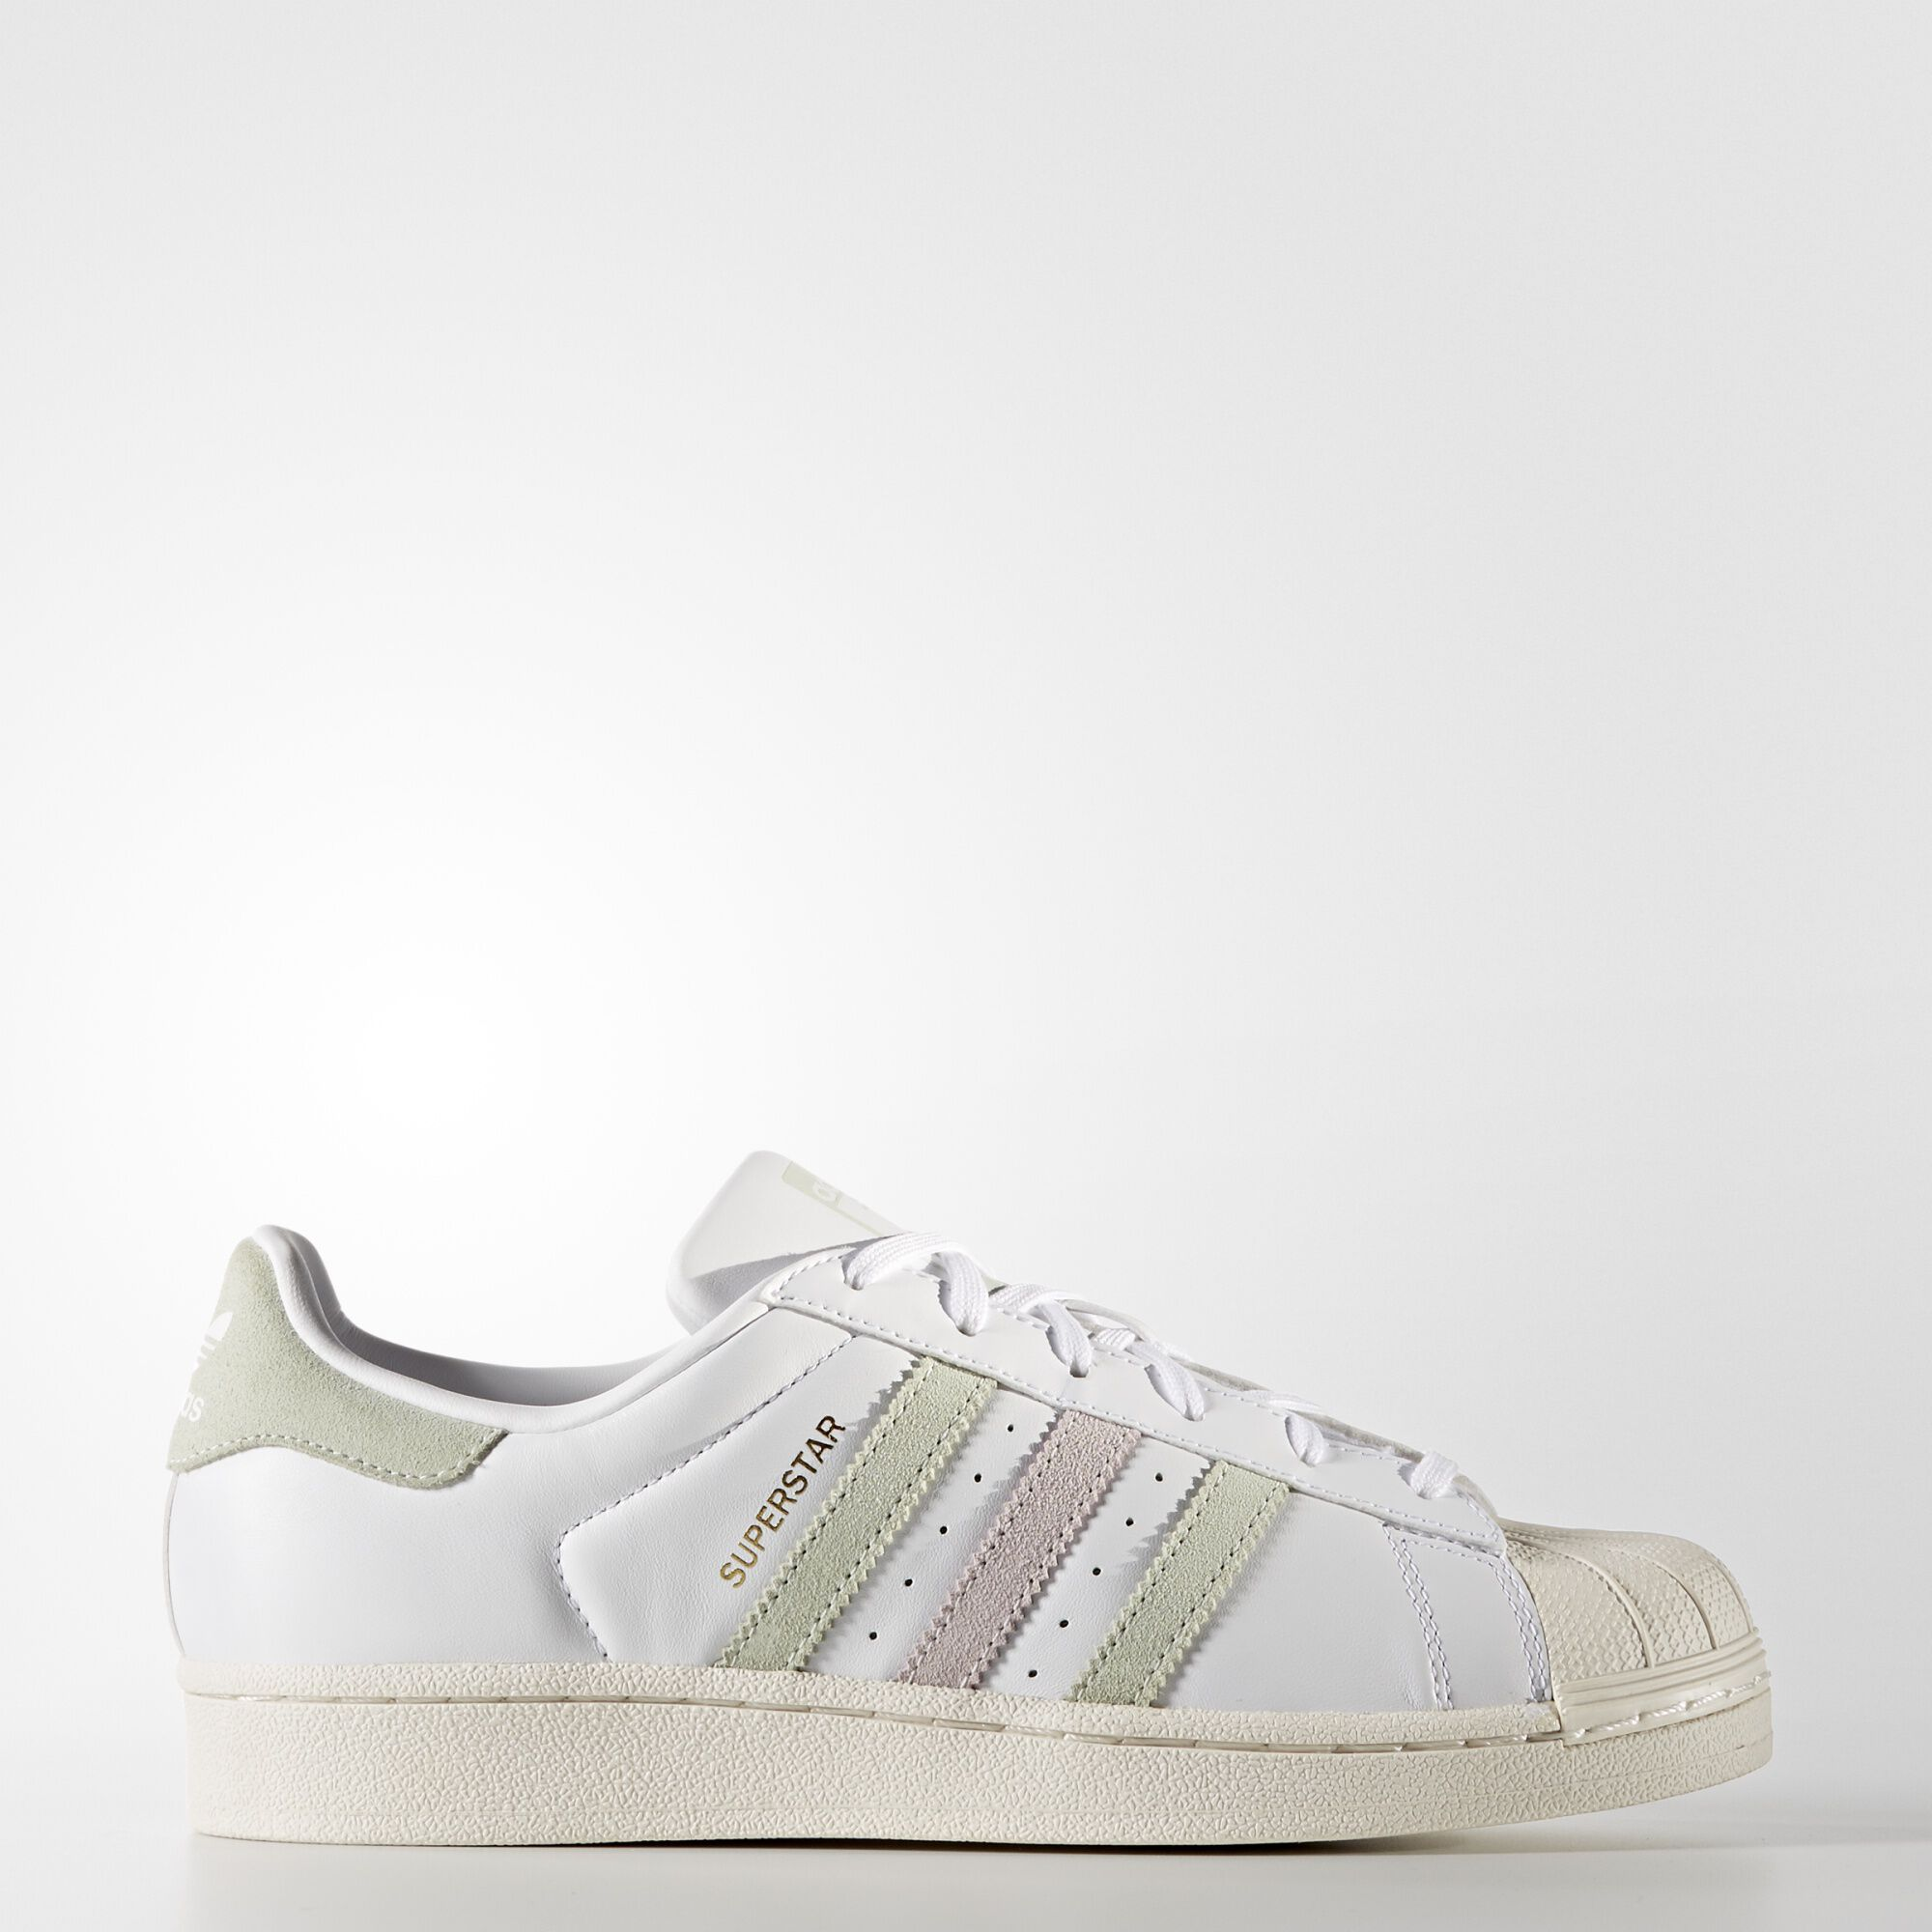 adidas for Kids: Superstar Foundation White & Black Sneakers